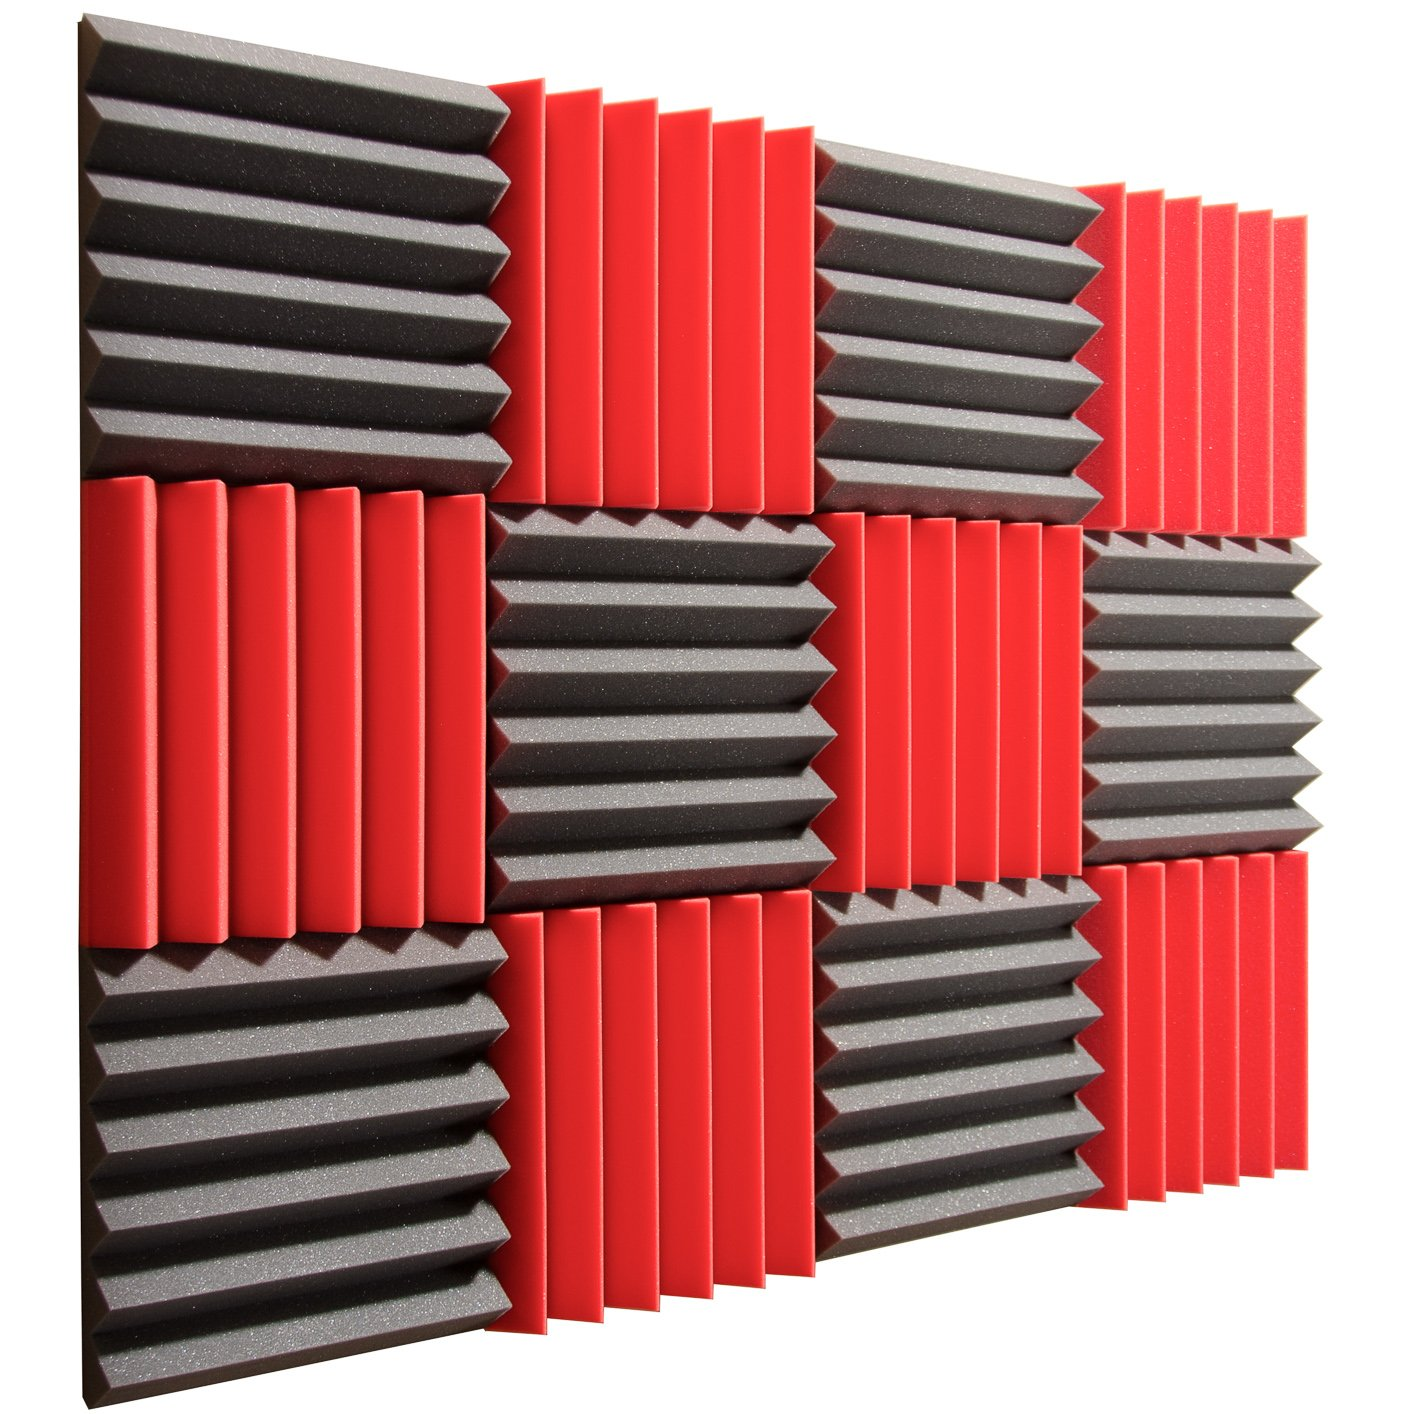 Pro Studio Acoustics - 12''x12''x2'' Acoustic Wedge Foam Absorption Soundproofing Tiles - Red/Charcoal - 12 Pack